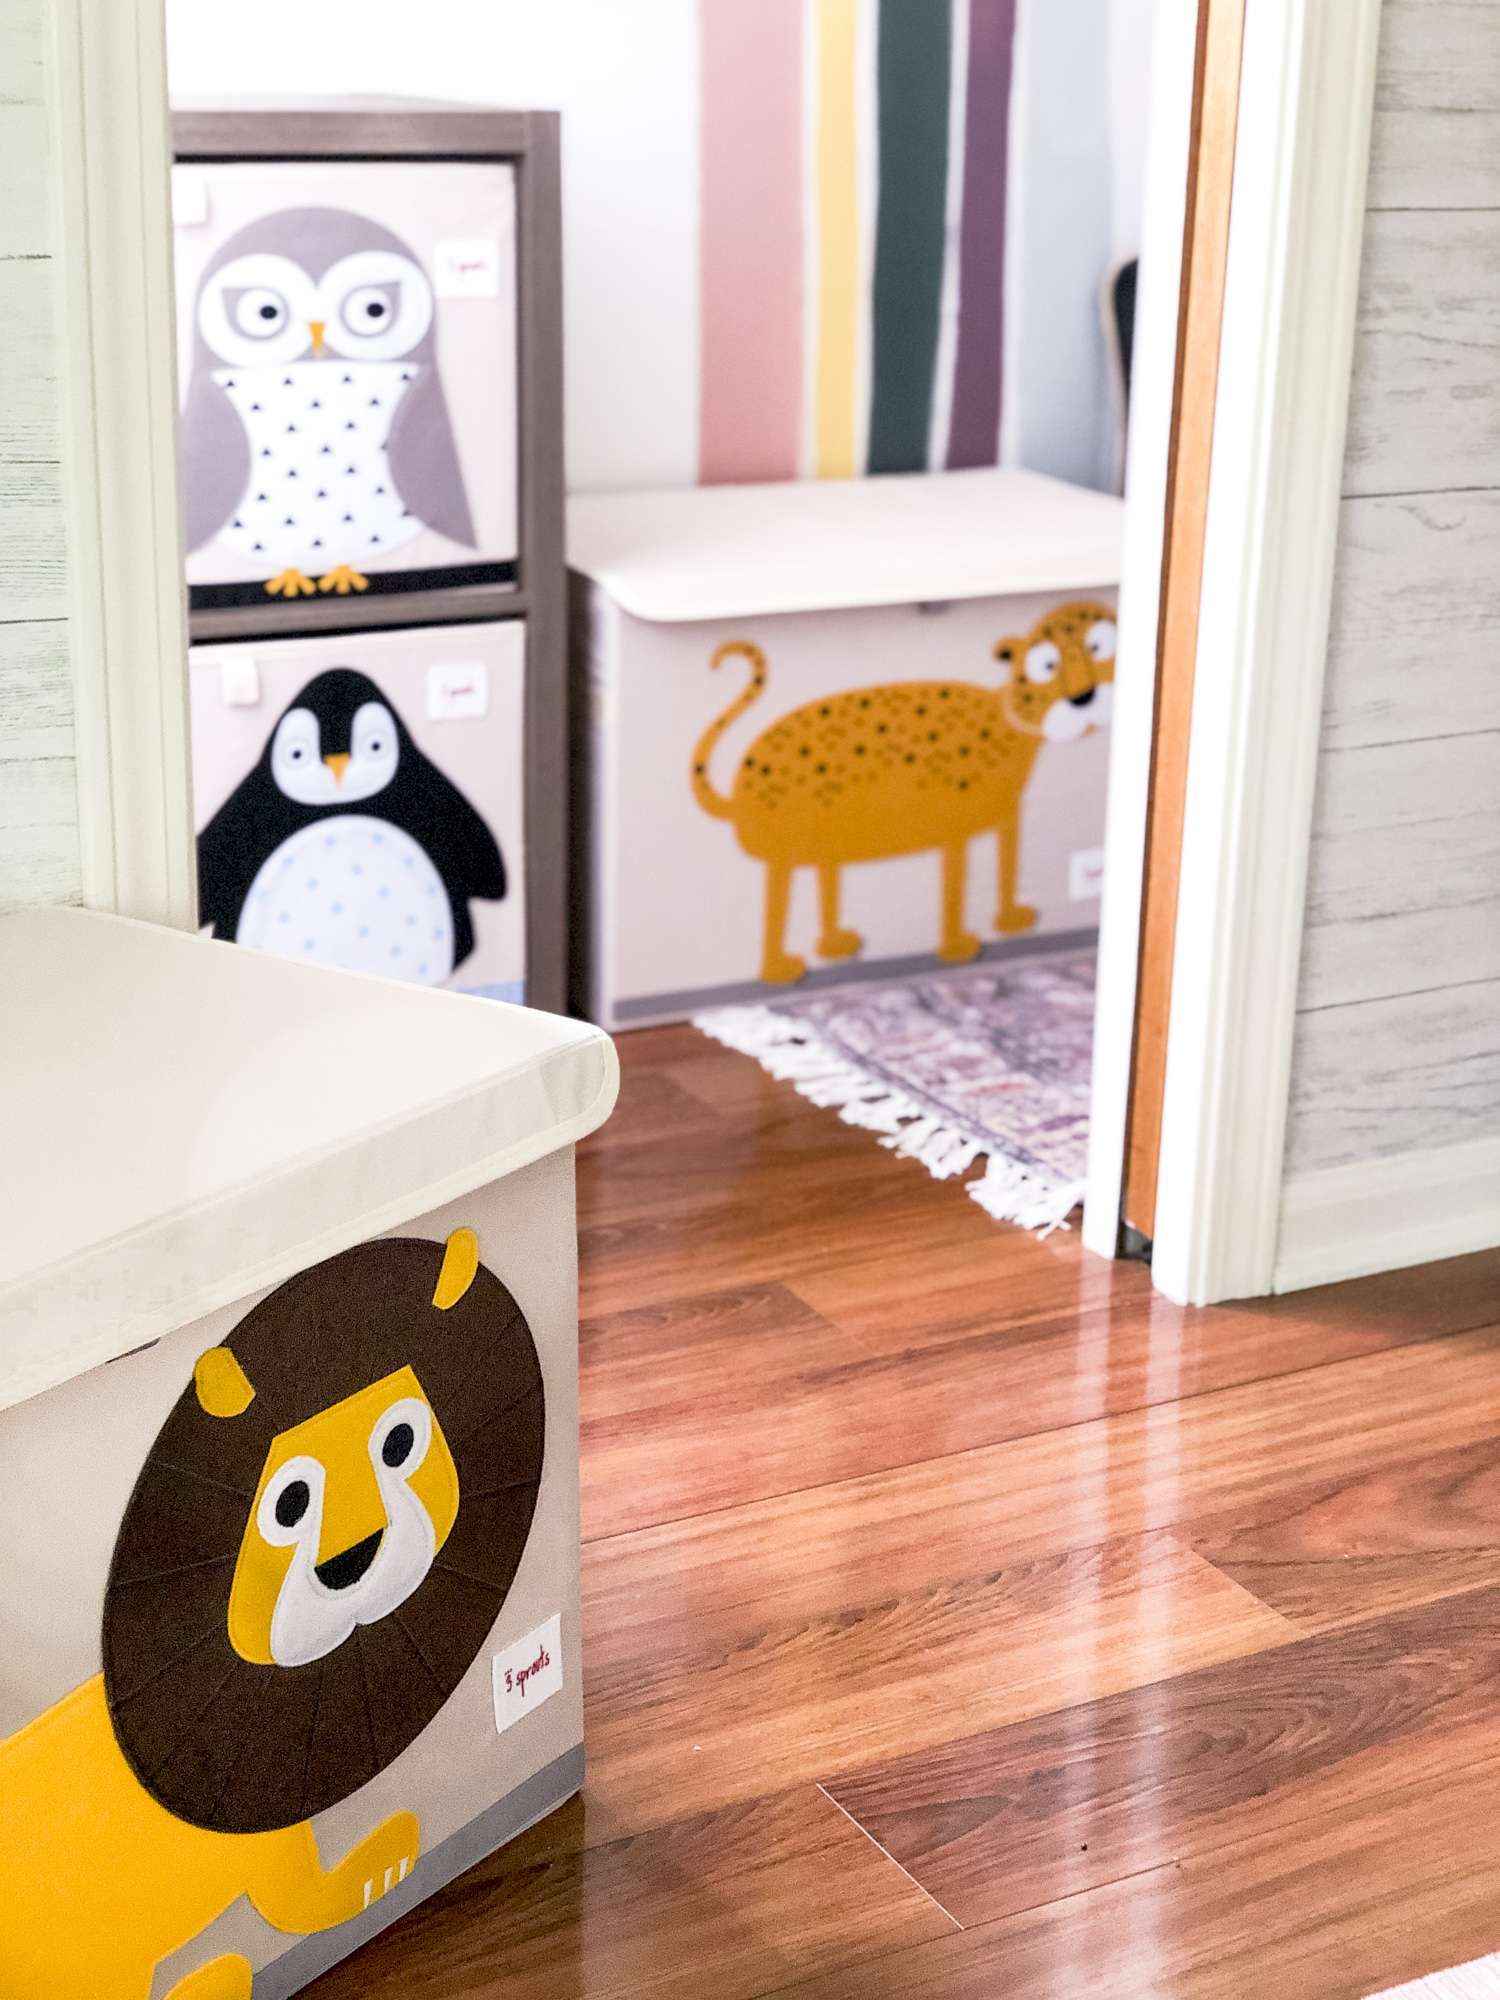 Playroom ideas and storage solutions.